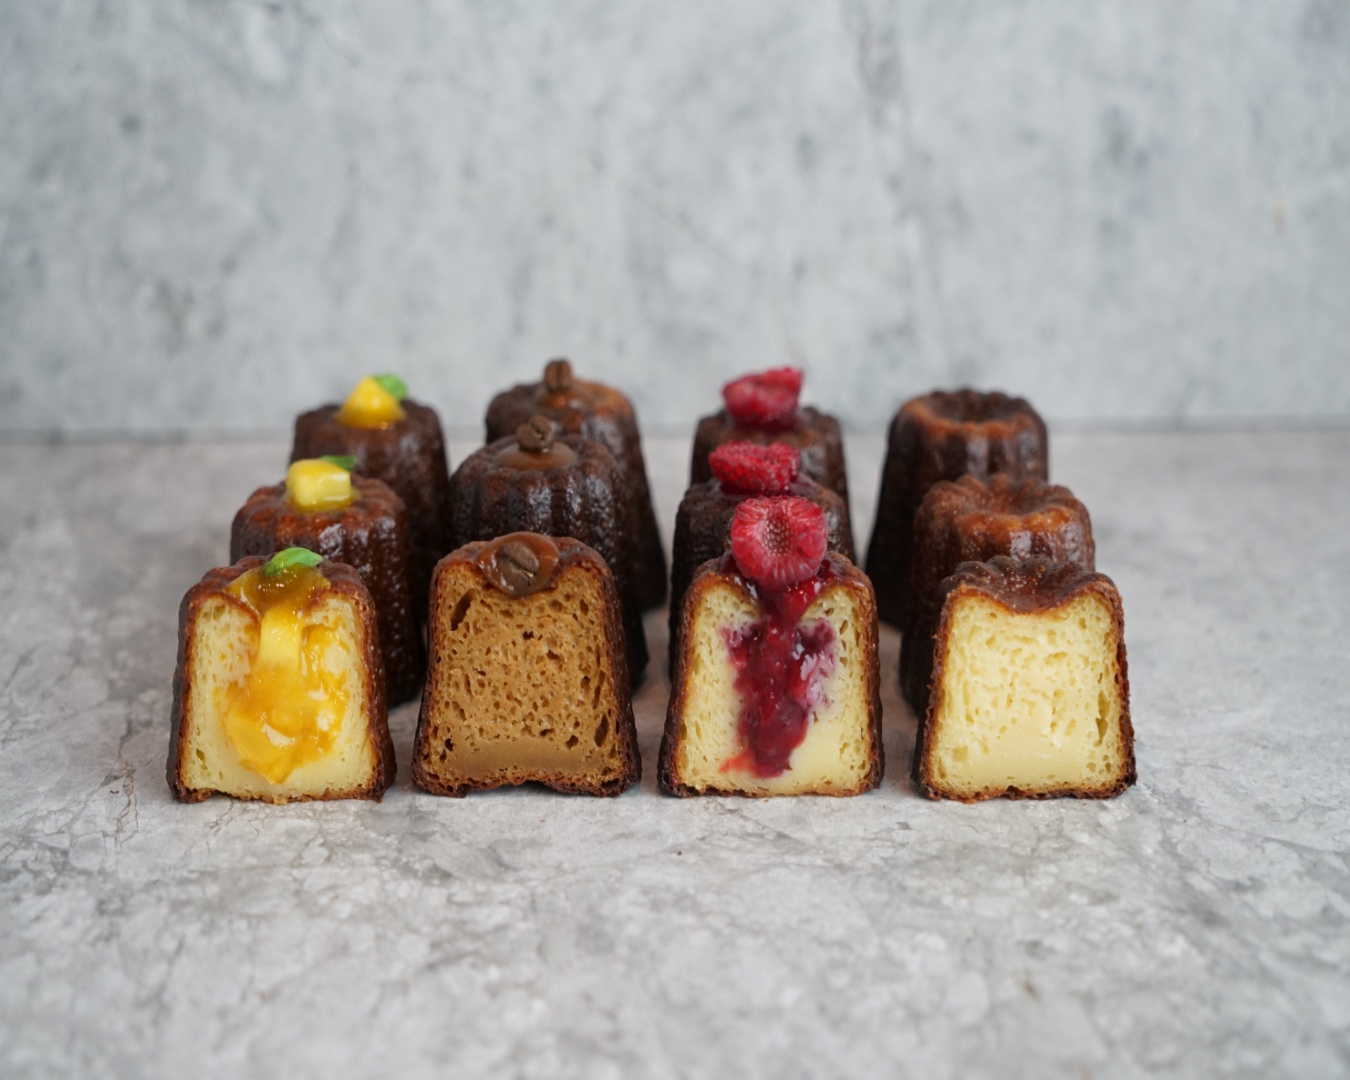 Four cross-sections of canele pastries - lemon curd, raspberry, plain and ginger - on a marble bench